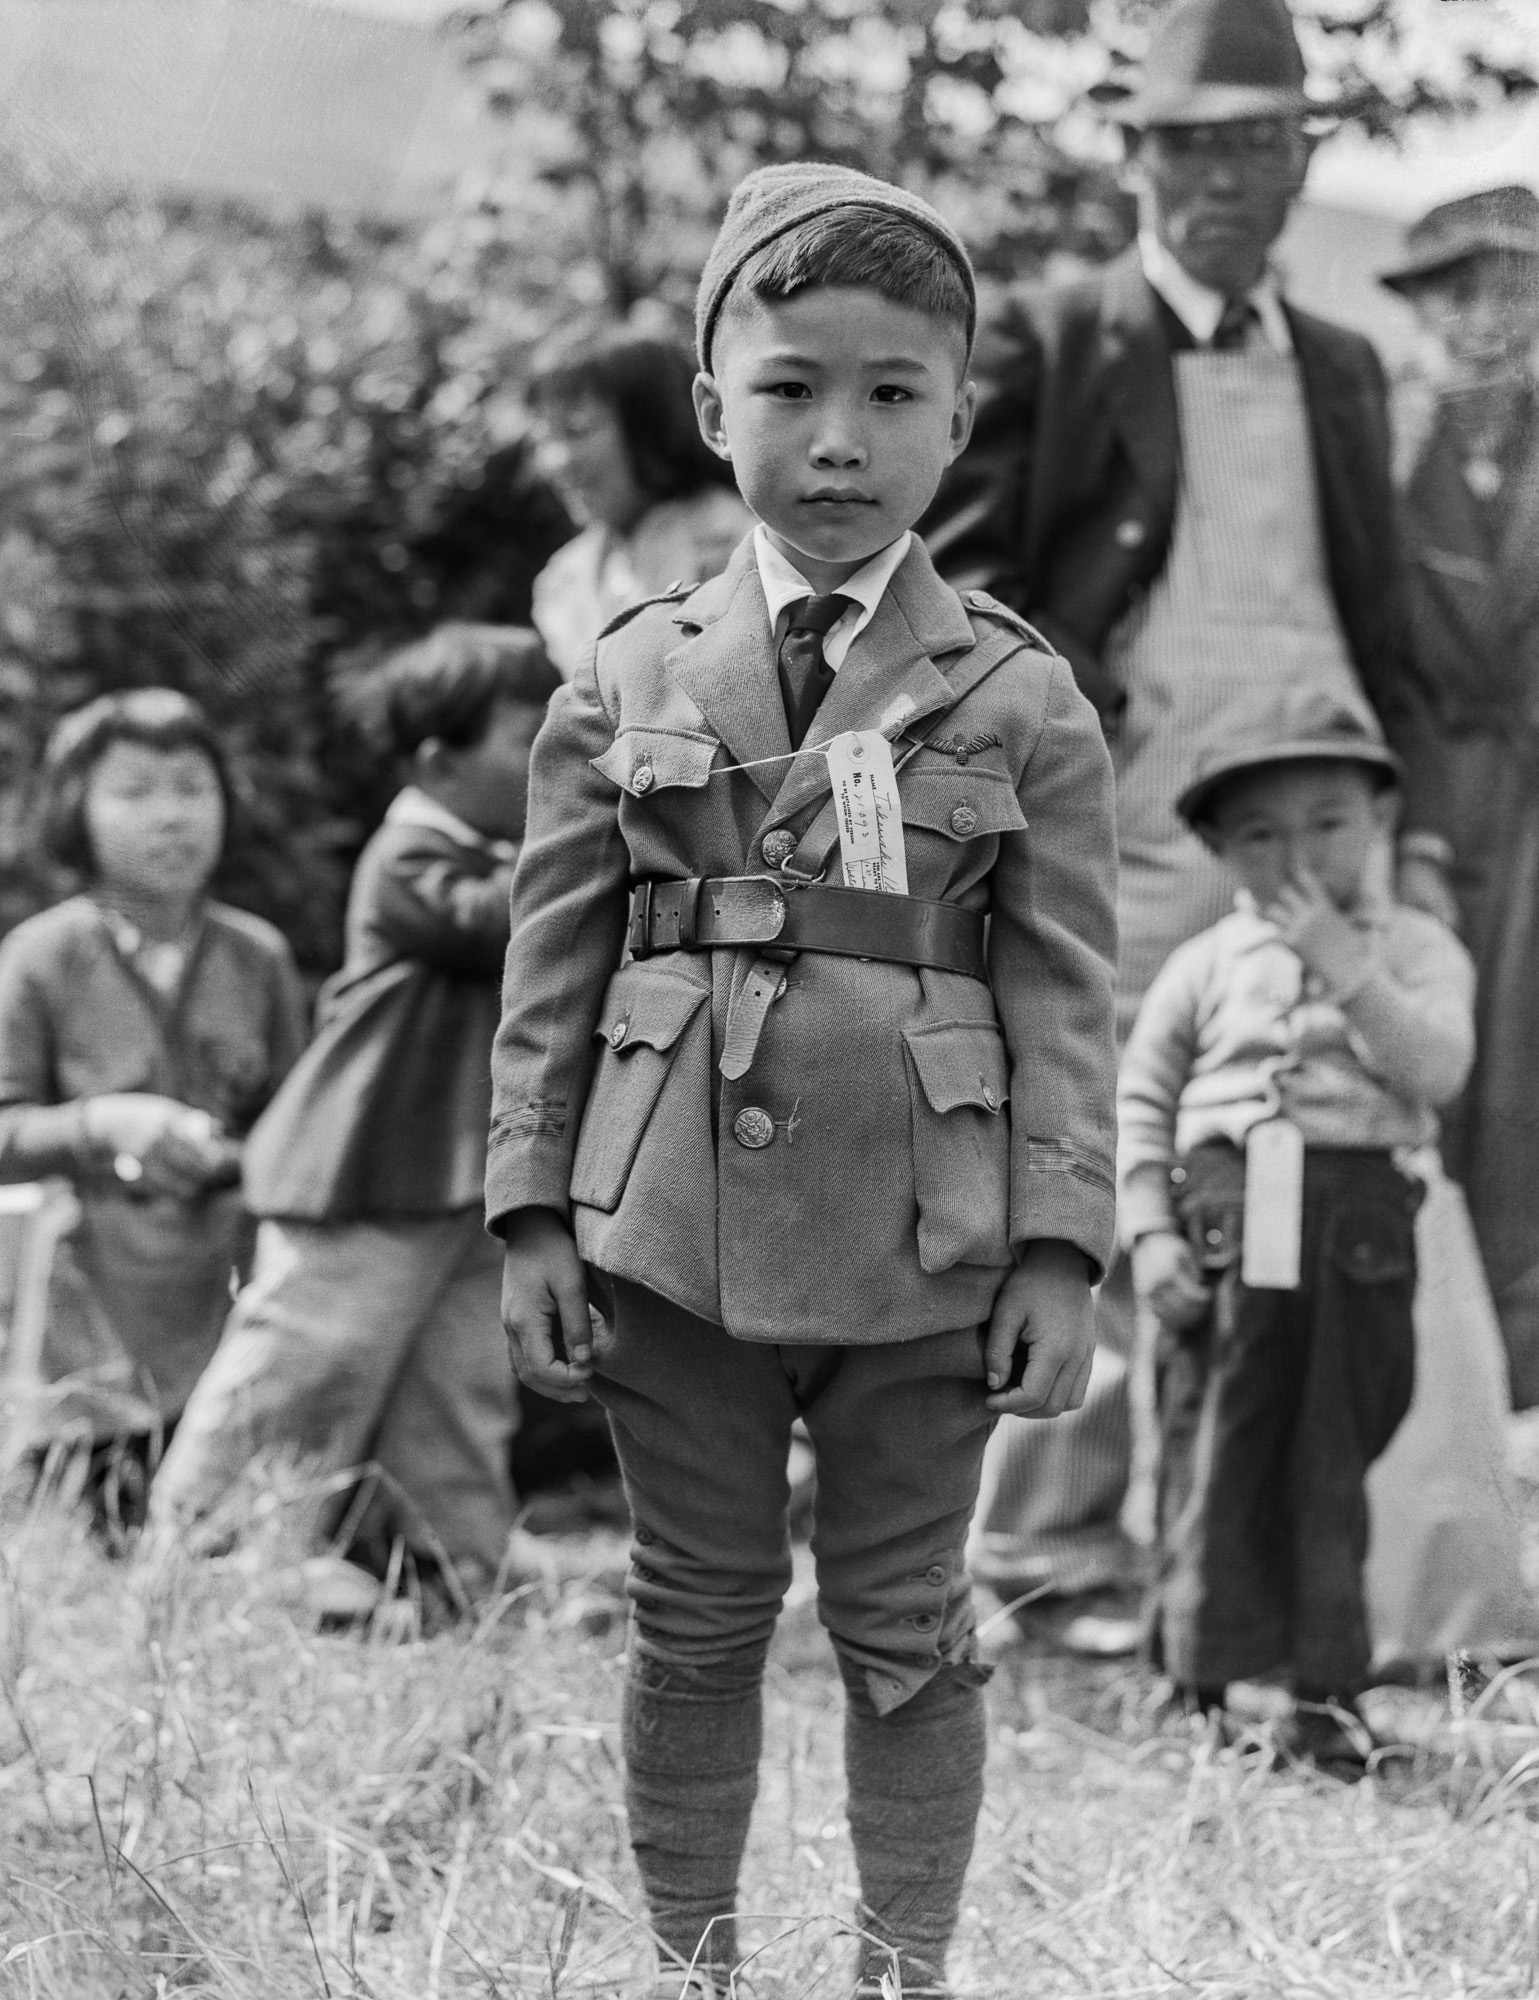 PRINT AVAILABLE   May 9, 1942 — Centerville, California. This youngster is awaiting evacuation bus. Evacuees of Japanese ancestry will be housed in War Relocation Authority centers for the duration.